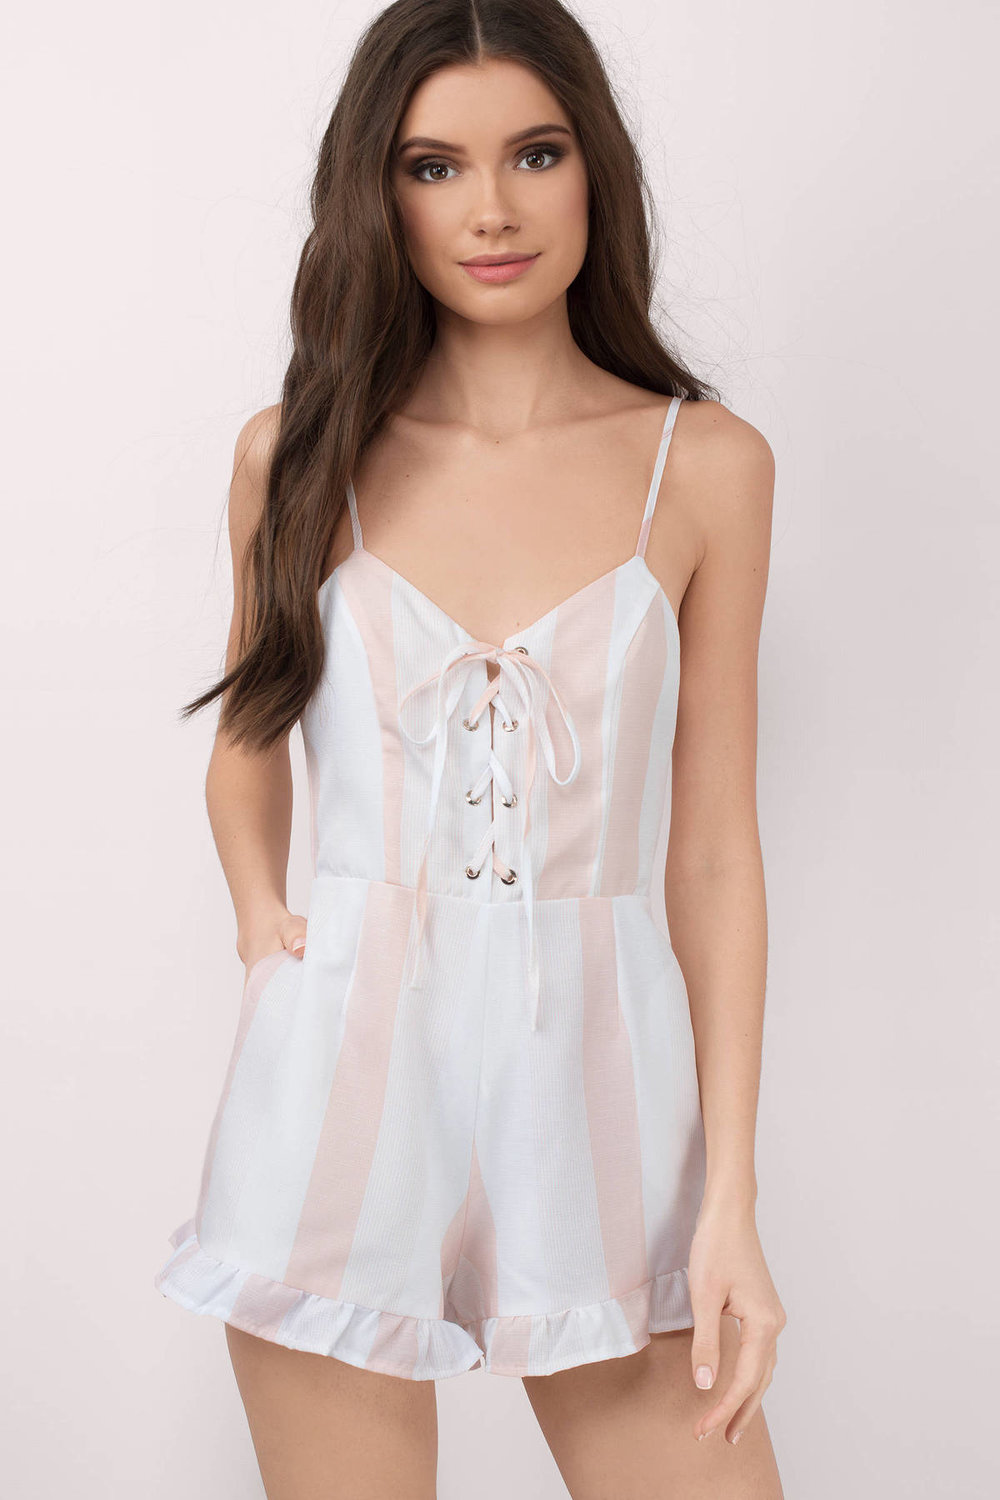 blush-adeline-striped-lace-up-romper@2x.jpg